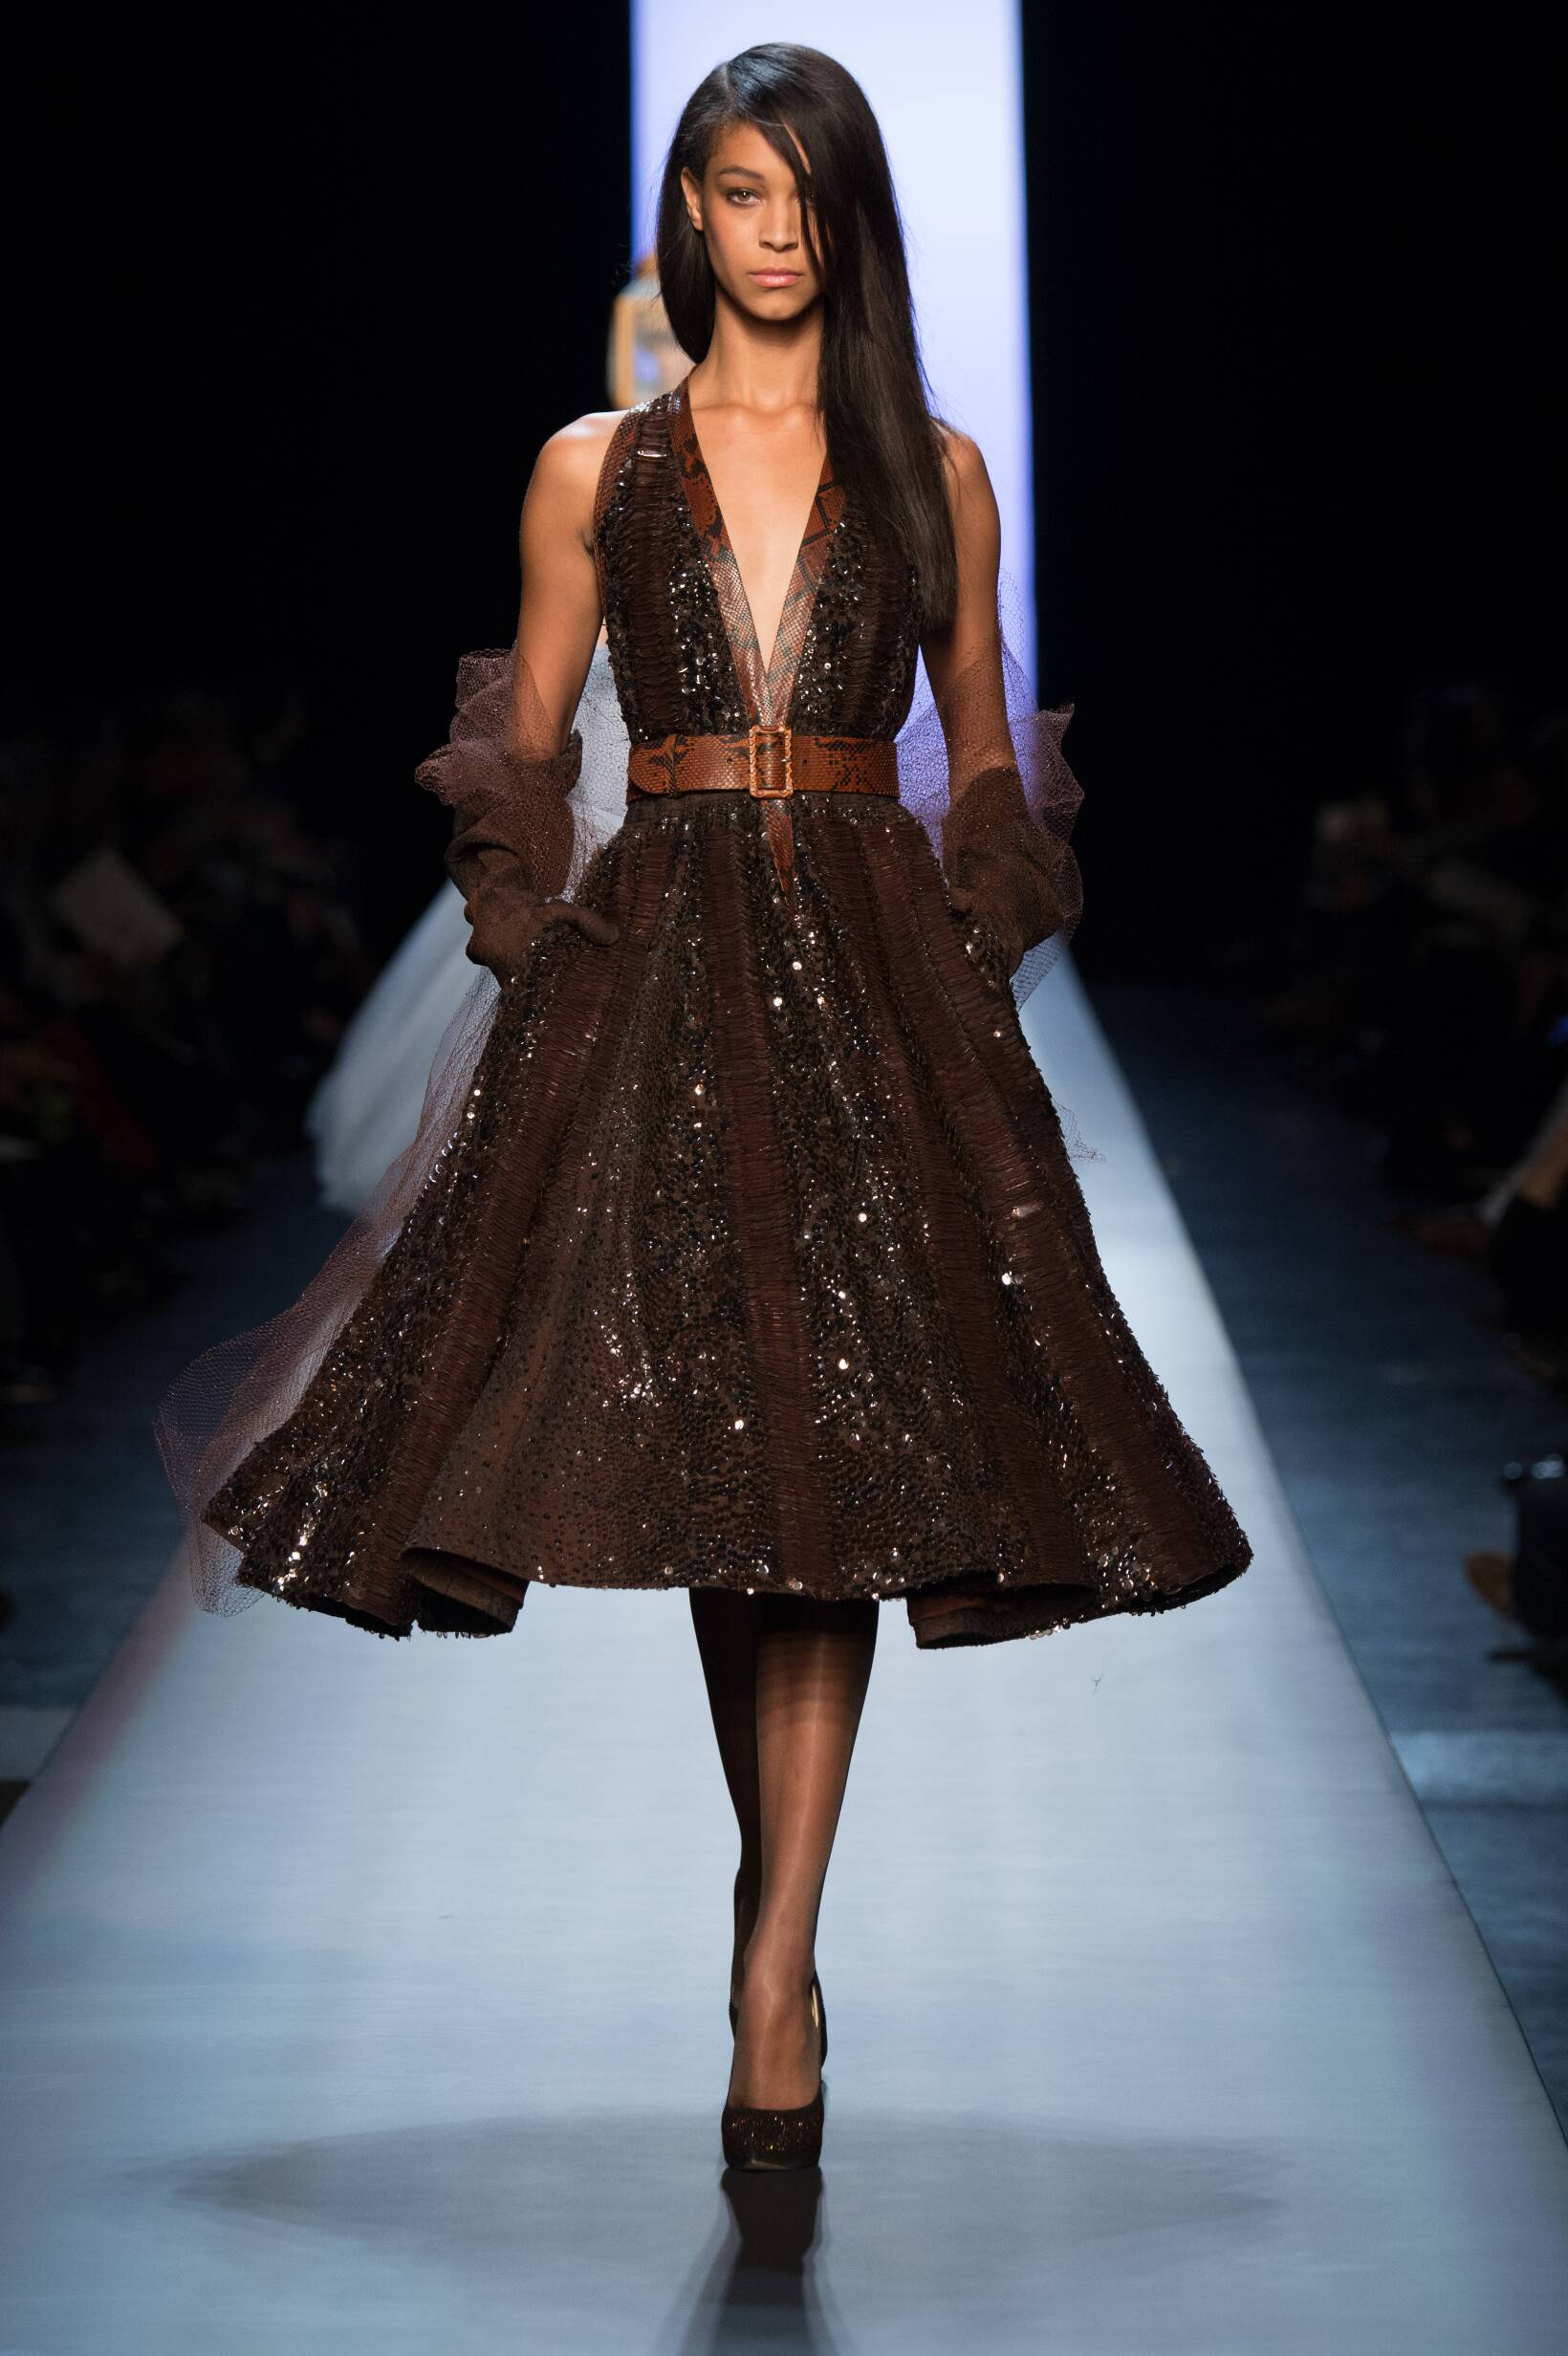 Jean Paul Gaultier Haute Couture Collection Summer 2015 Catwalk